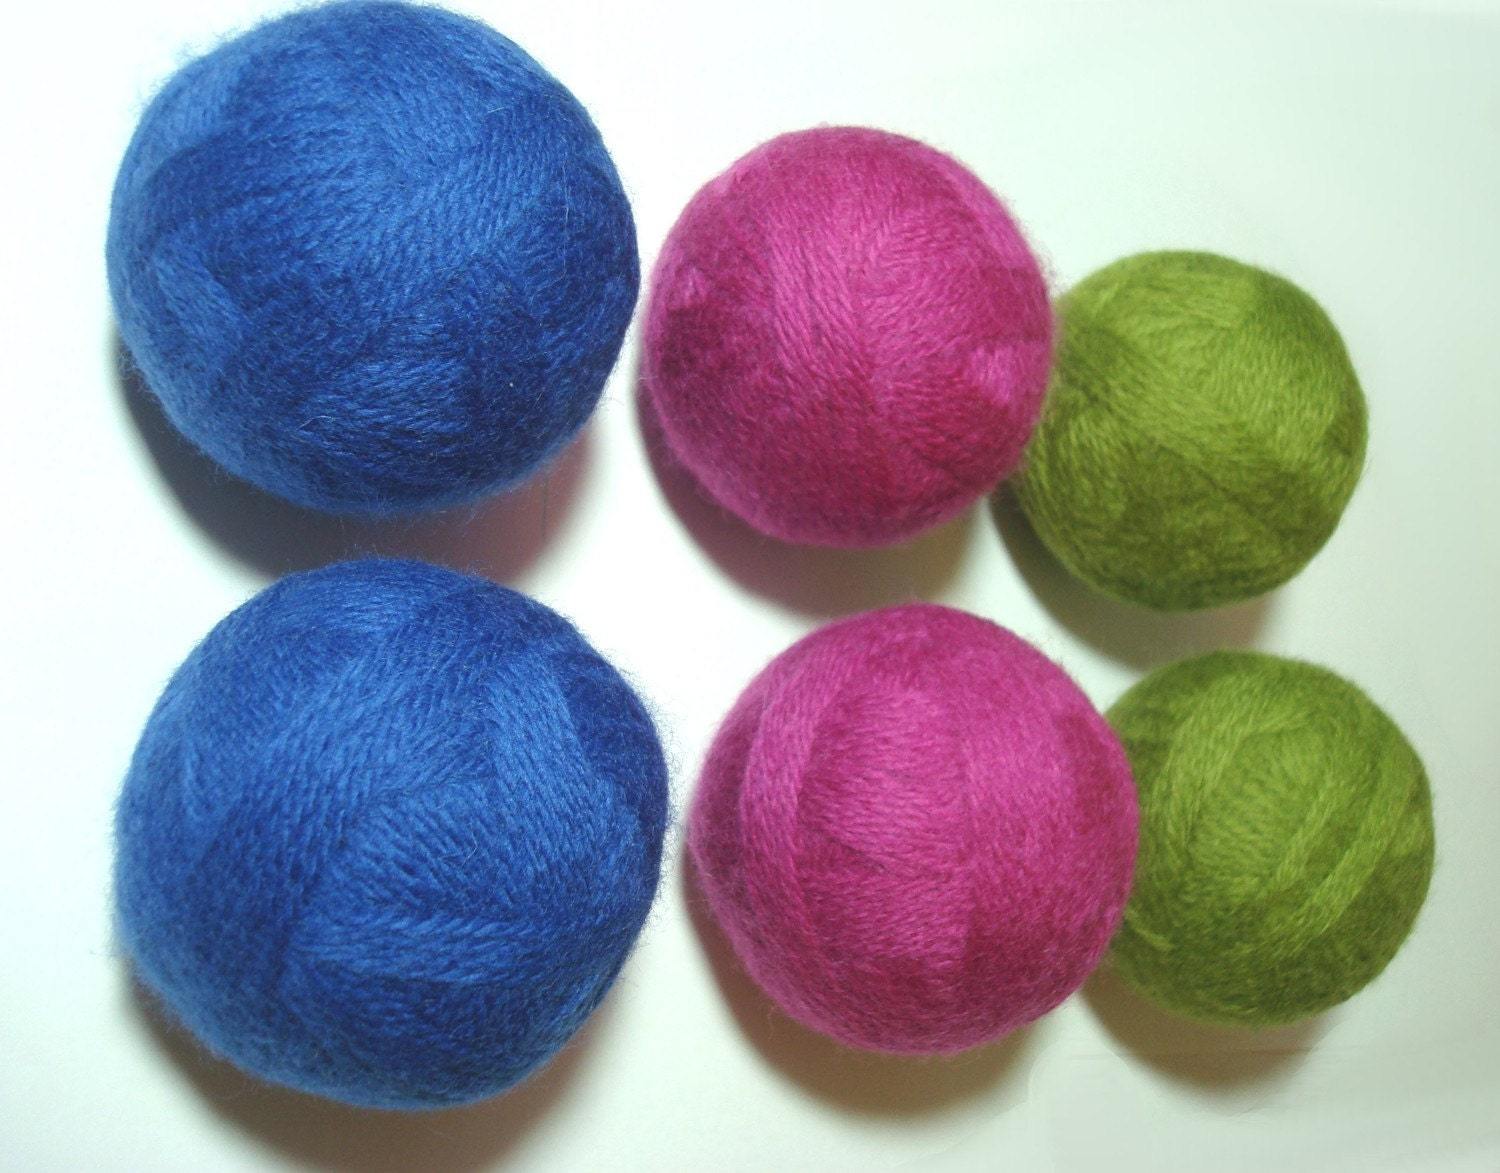 Eco Friendly Set of 6 Wool Dryer Balls, 2 Blue, 2 Pink, and 2 Green, Energy Saver, Laundry, Felted